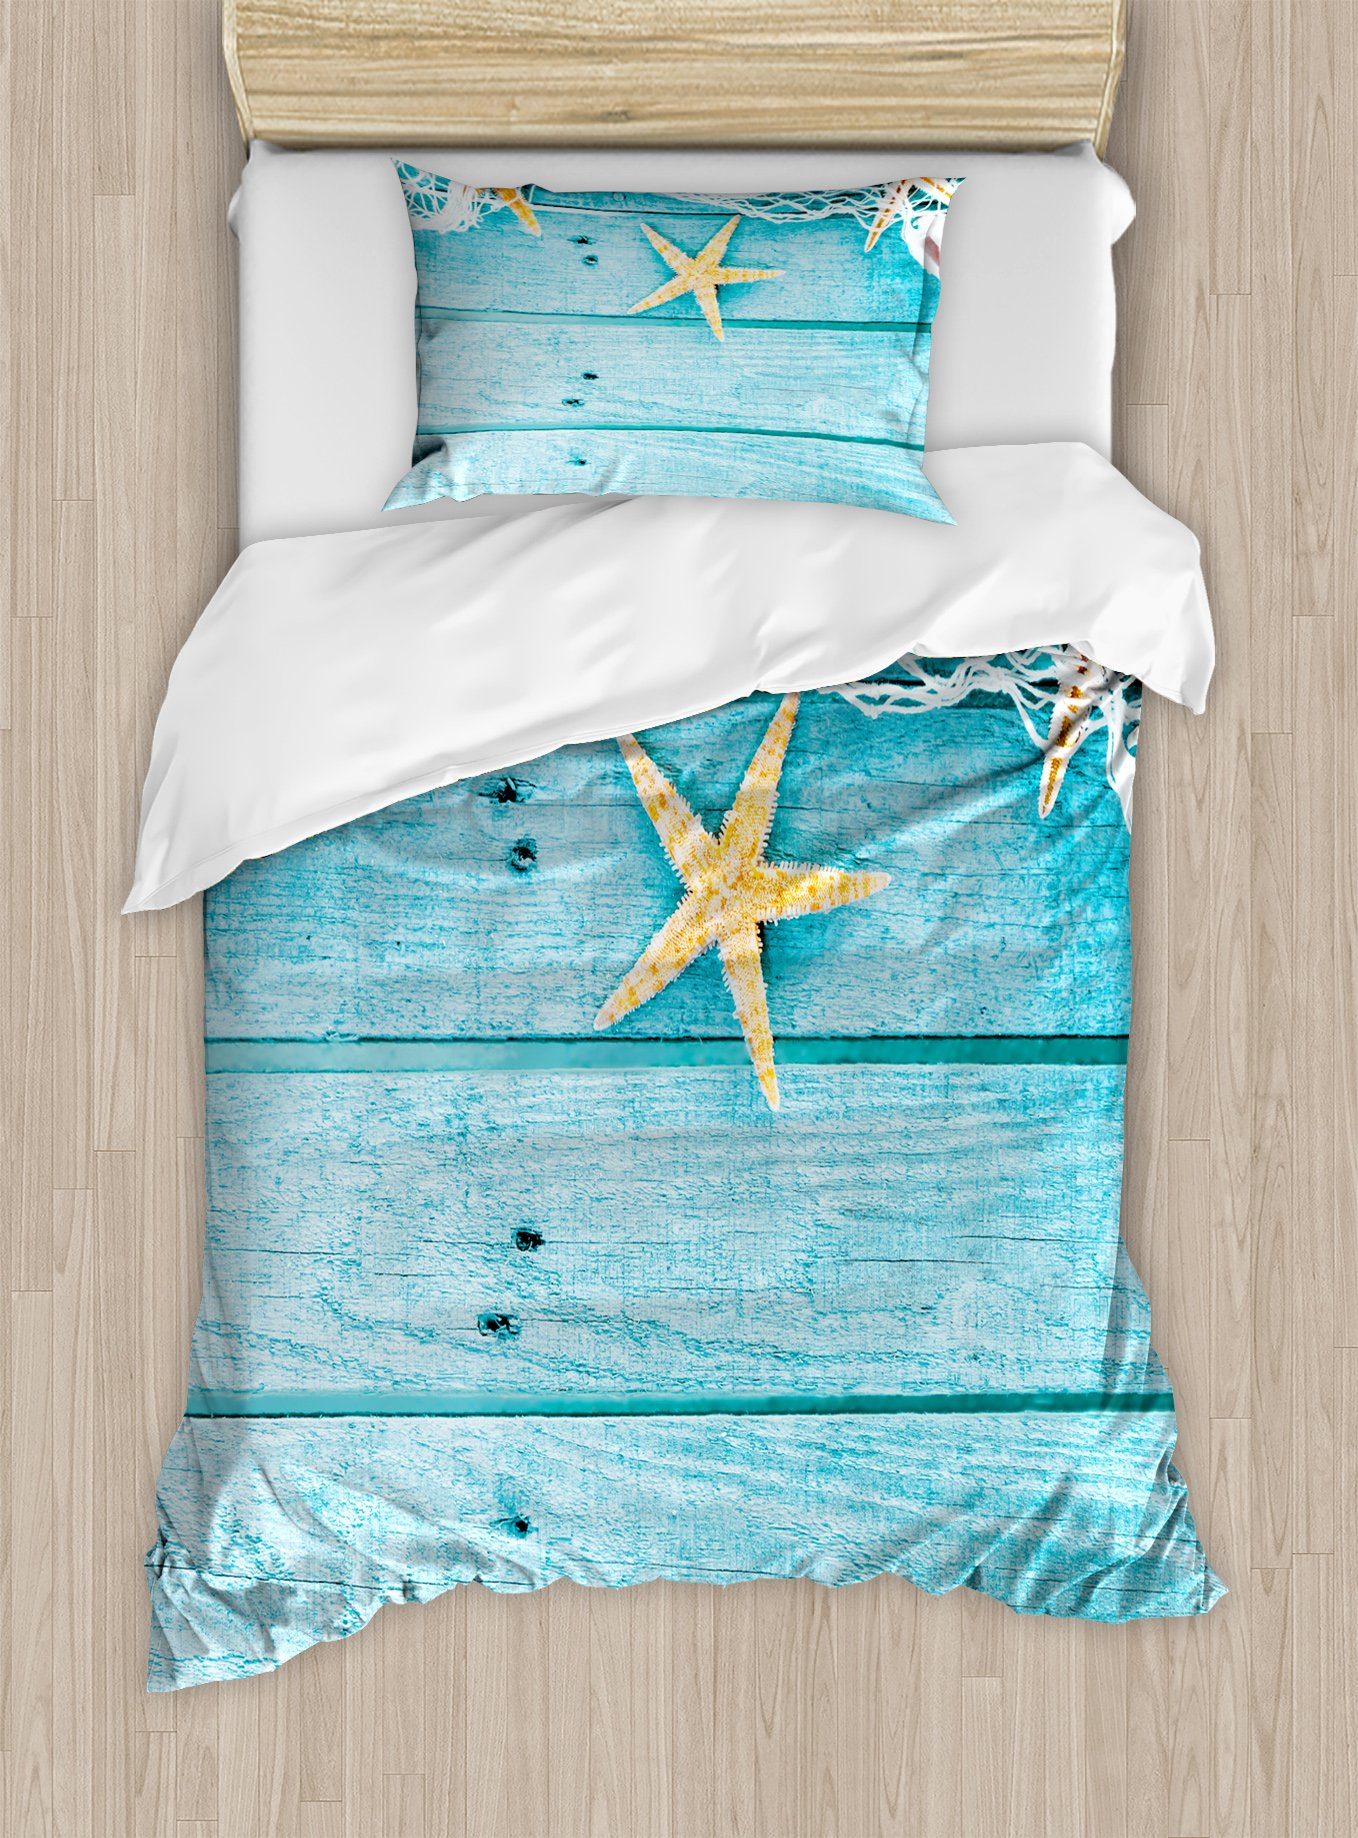 Ambesonne Starfish Duvet Cover Set Twin Size, Rustic Wood Boards Fishing Net and The Ocean Animals Nautical Print, Decorative 2 Piece Bedding Set with 1 Pillow Sham, Turquoise White Orange